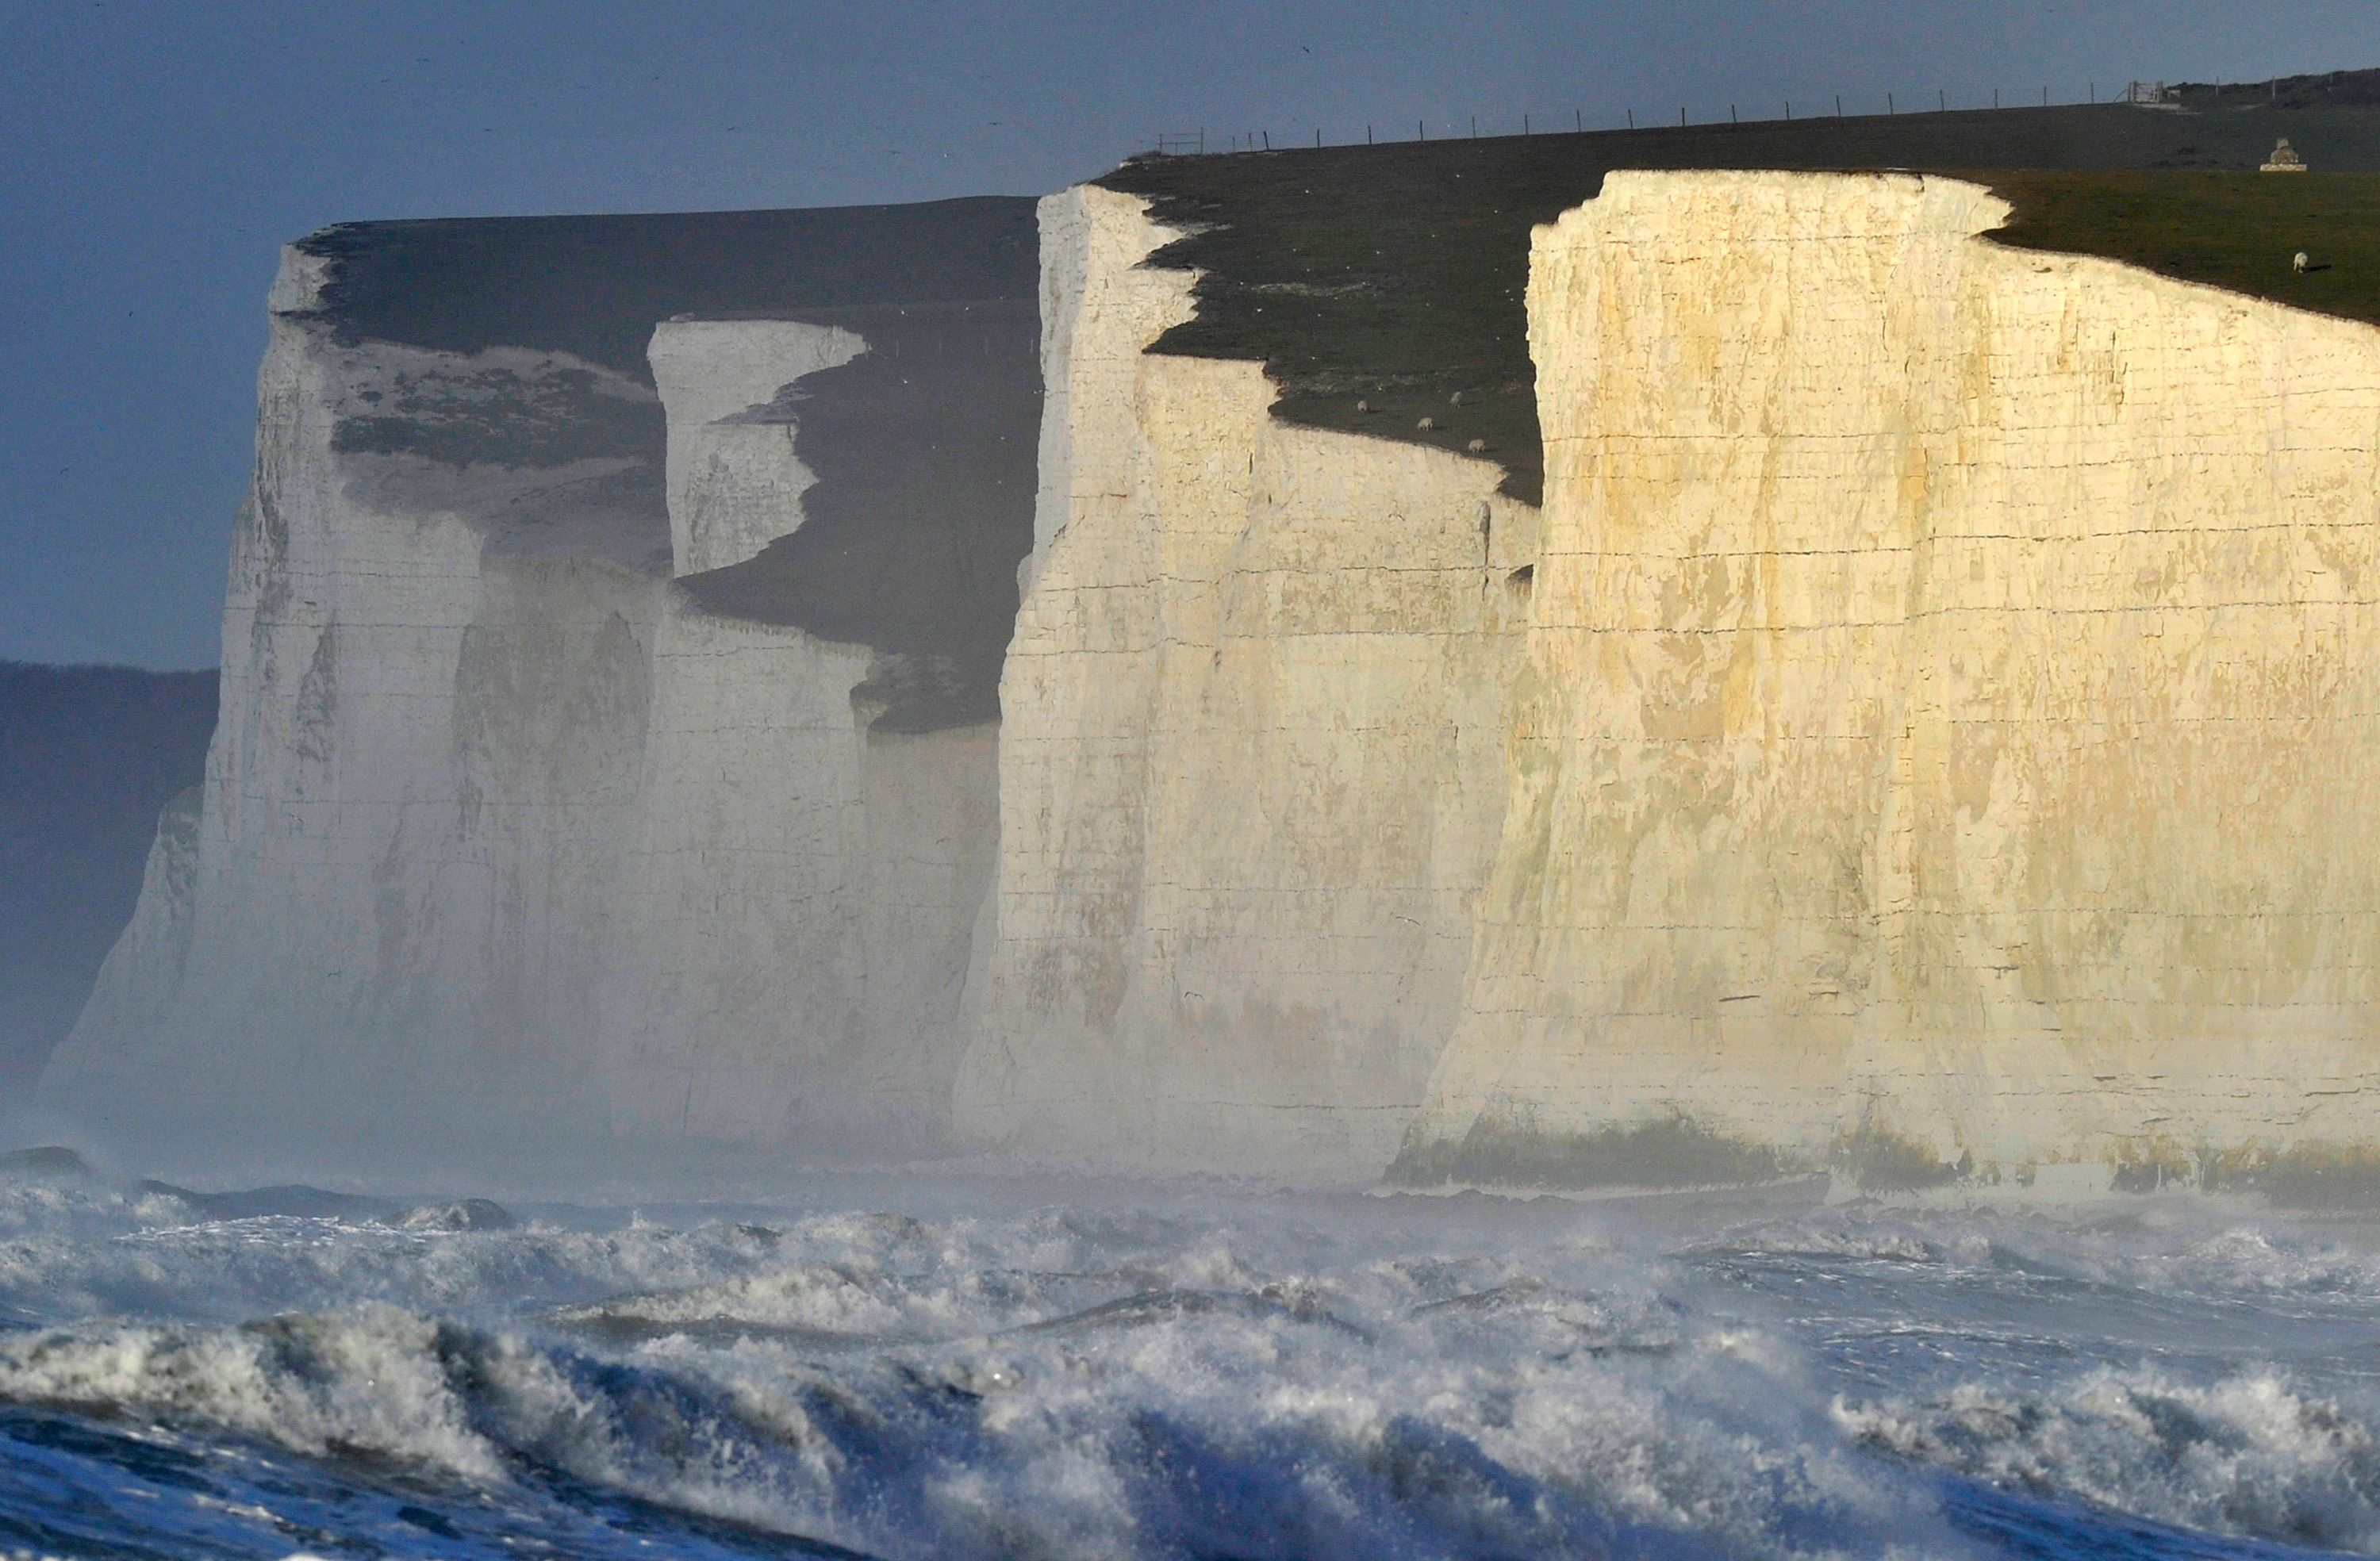 Ten people have died at Beachy Head in Sussex during the past